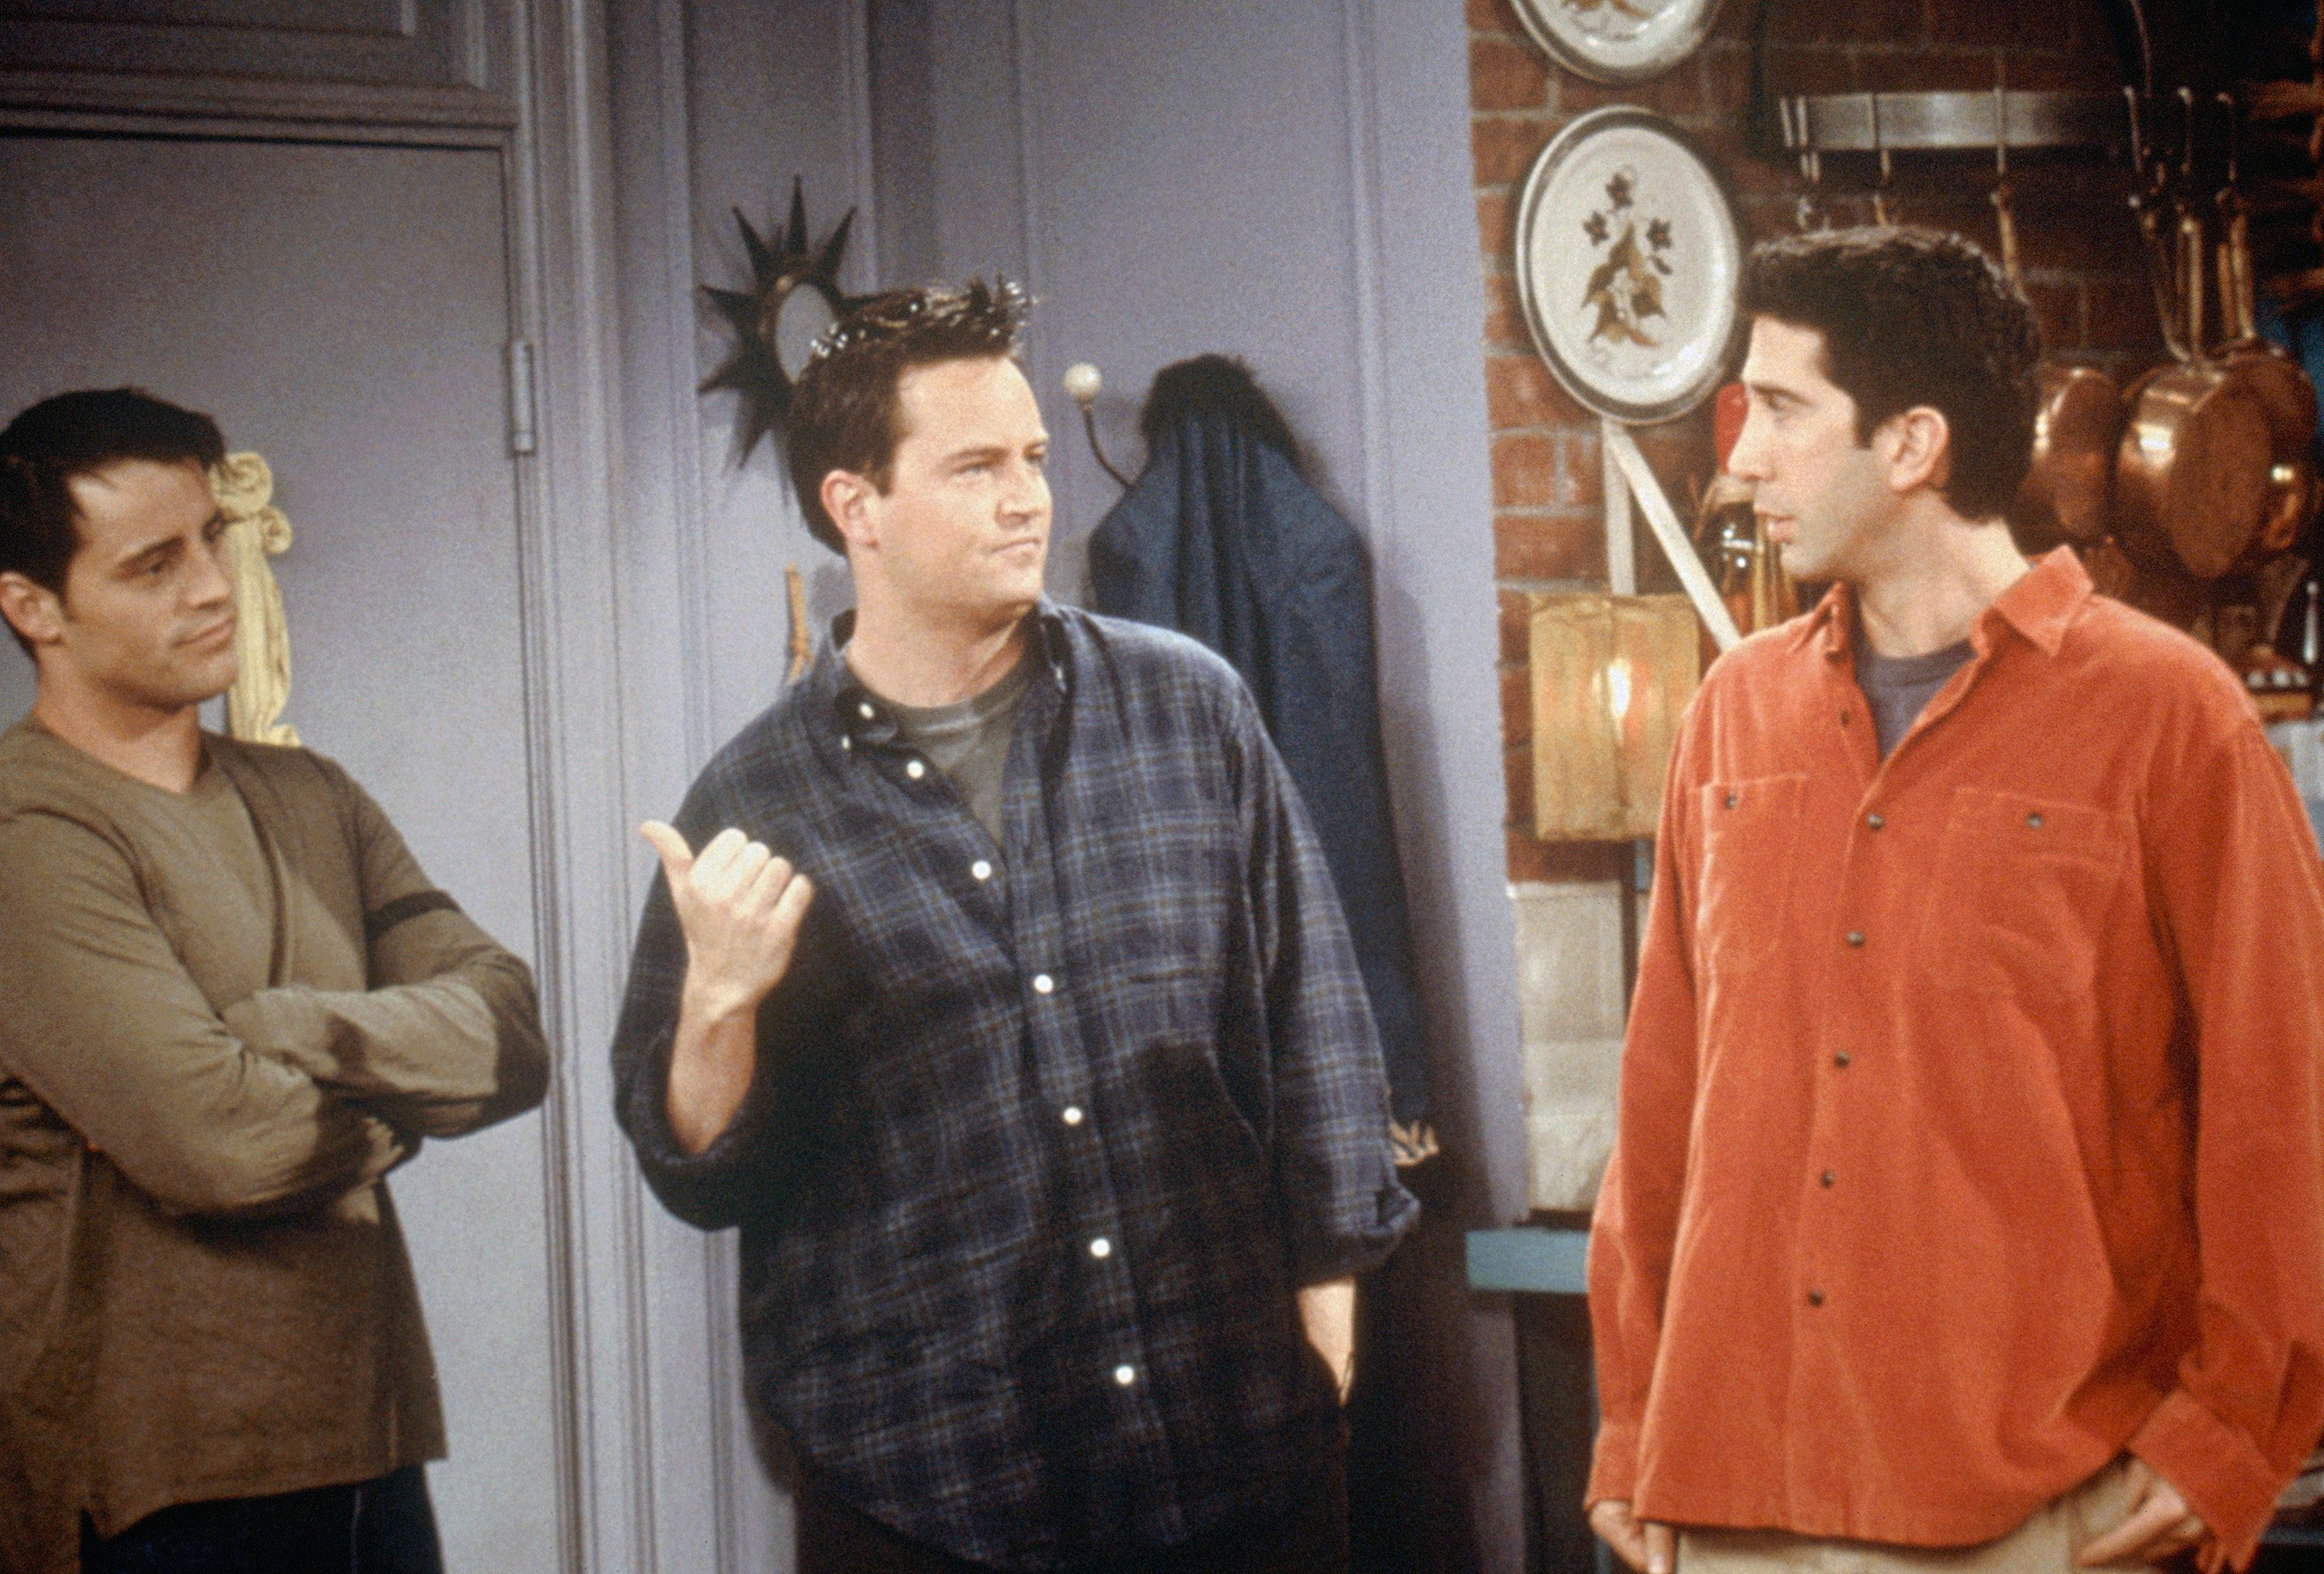 FRIENDS -- 'The One on the Last Night' Episode 6 -- Pictured: (l-r) Matt LeBlanc as Joey Tribbiani, Matthew Perry as Chandler Bing, David Schwimmer as Ross Geller  (Photo by NBC/NBCU Photo Bank via Getty Images)